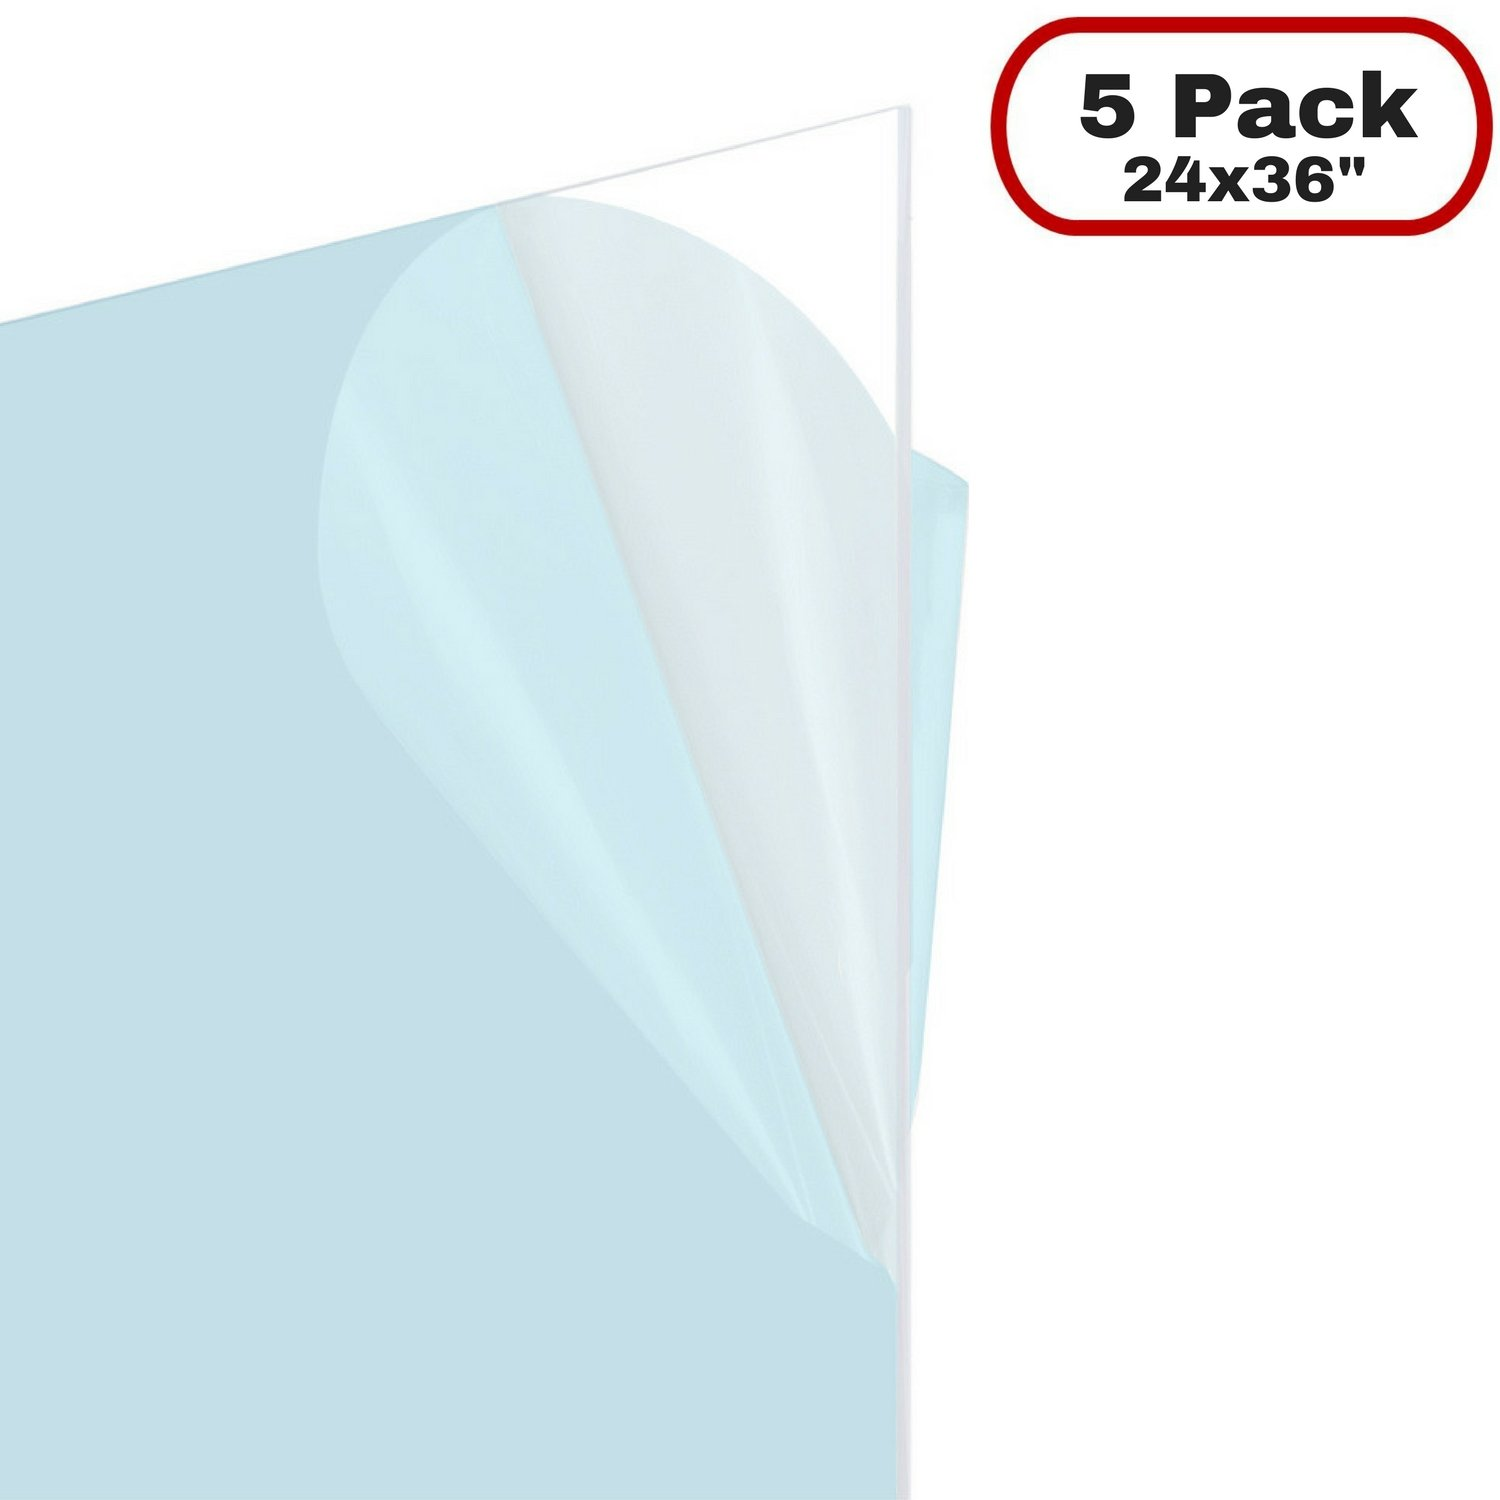 Icona Bay PET Replacement for Picture Frame Glass (24 x 36, 5 Pack) PET is Ideal Replacement Glass Material, Avoid Glass Shattering, Your Superior Replacement Picture Frame Glass has Arrived by Icona Bay